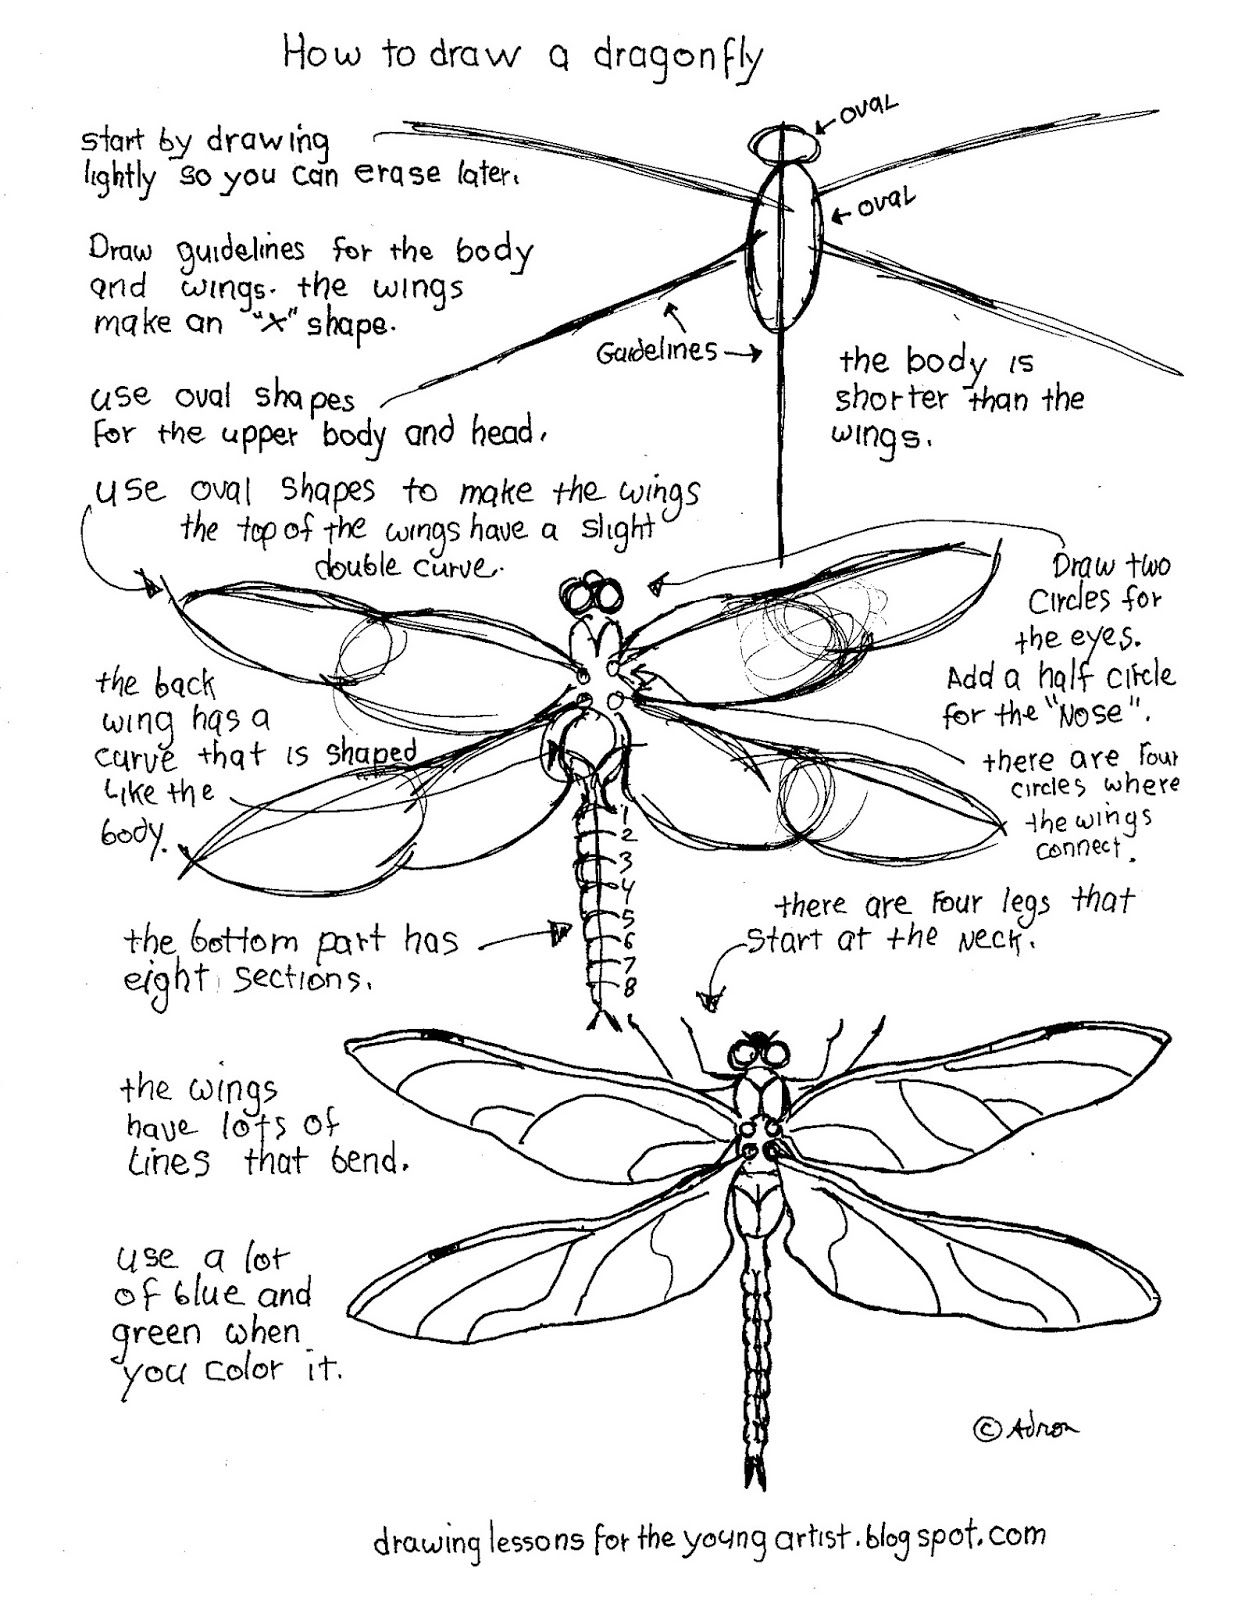 How To Draw Worksheets For The Young Artist Printable How To Draw A Dragonfly Worksheet